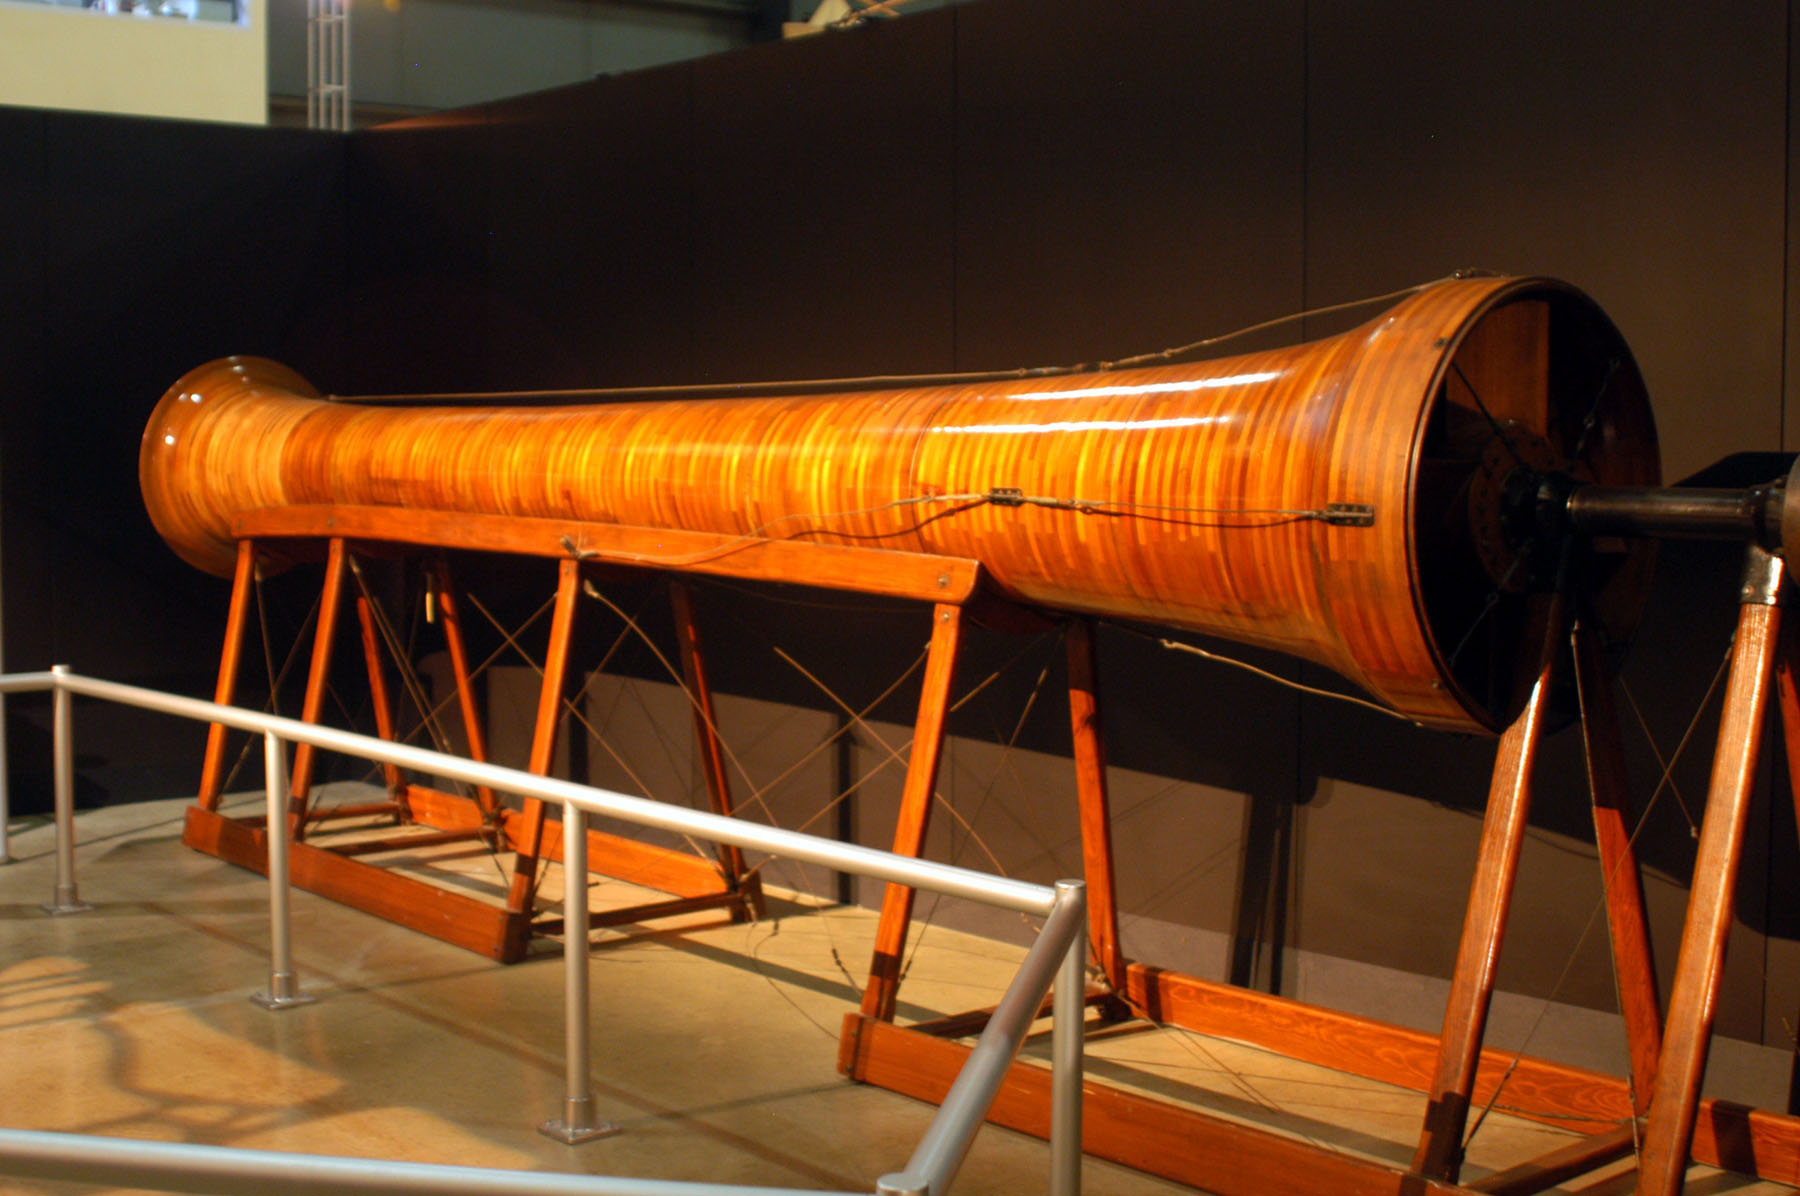 DAYTON, Ohio -- Wright Brothers 1911 Wind Tunnel at the National Museum of the United States Air Force. (U.S. Air Force photo)